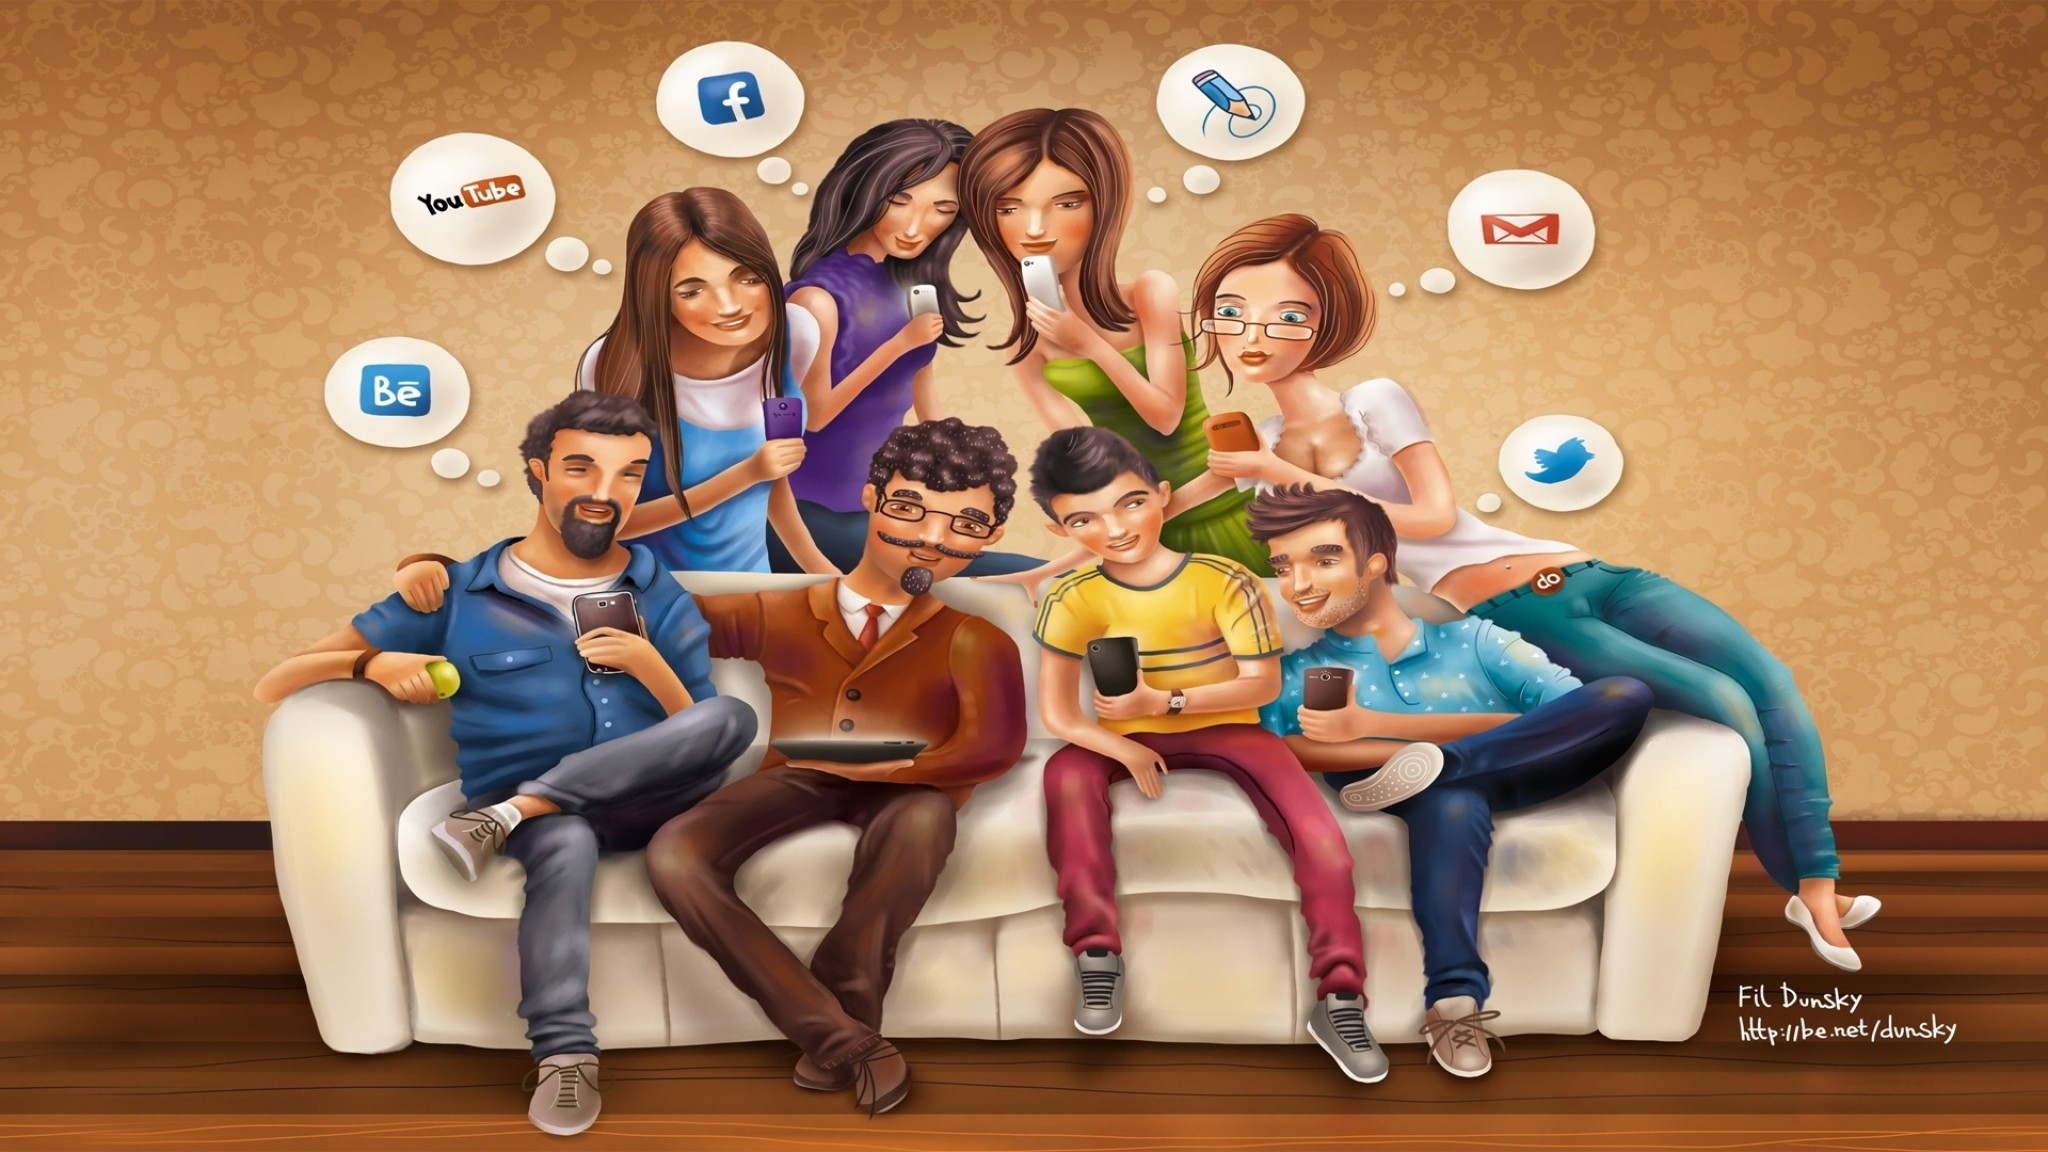 Preview wallpaper facebook, youtube, email, twitter, social networks  2048×1152